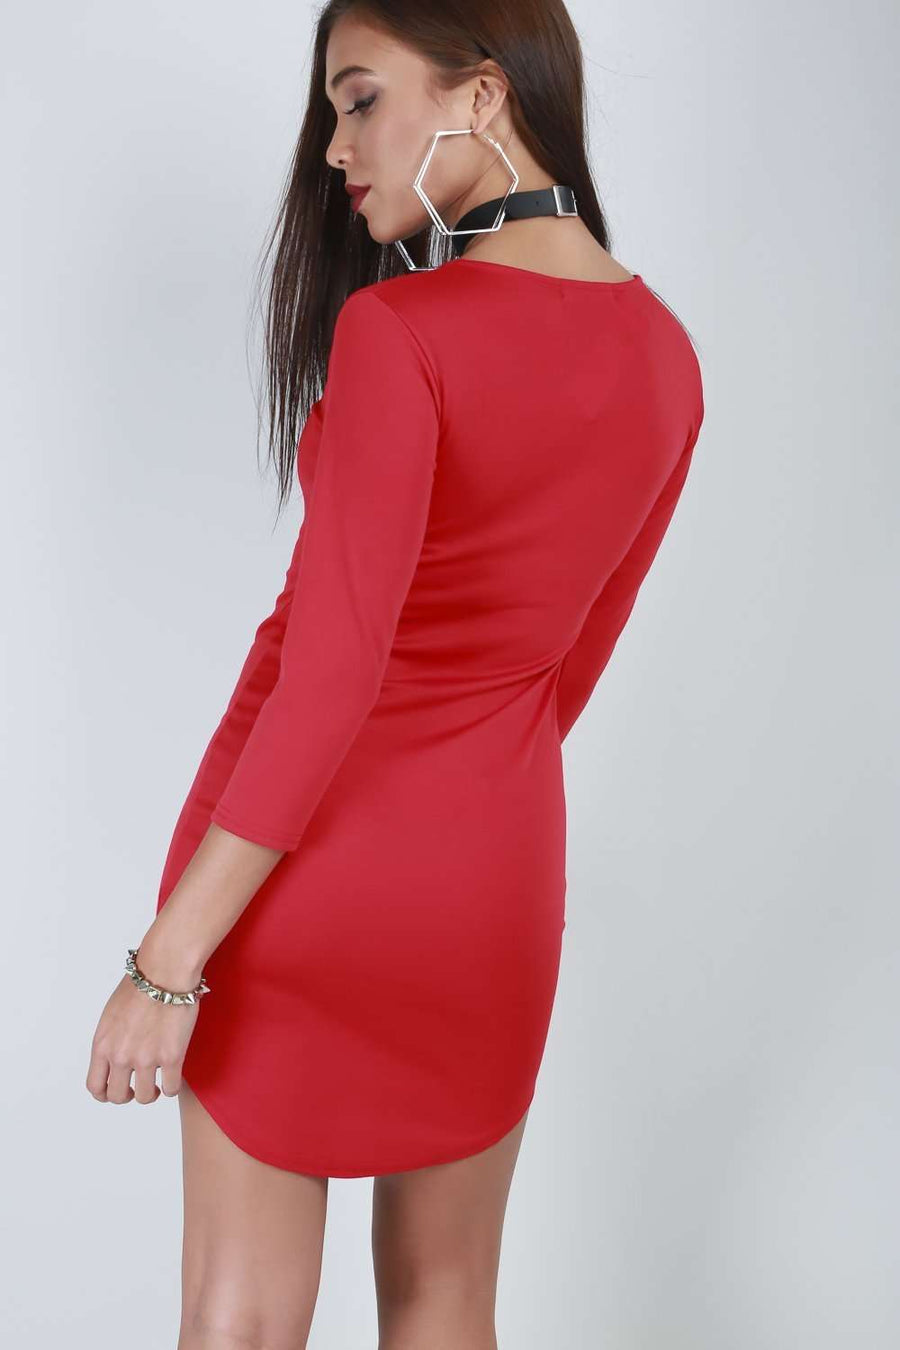 Felix Long Sleeve Curved Hem Bodycon Dress - bejealous-com